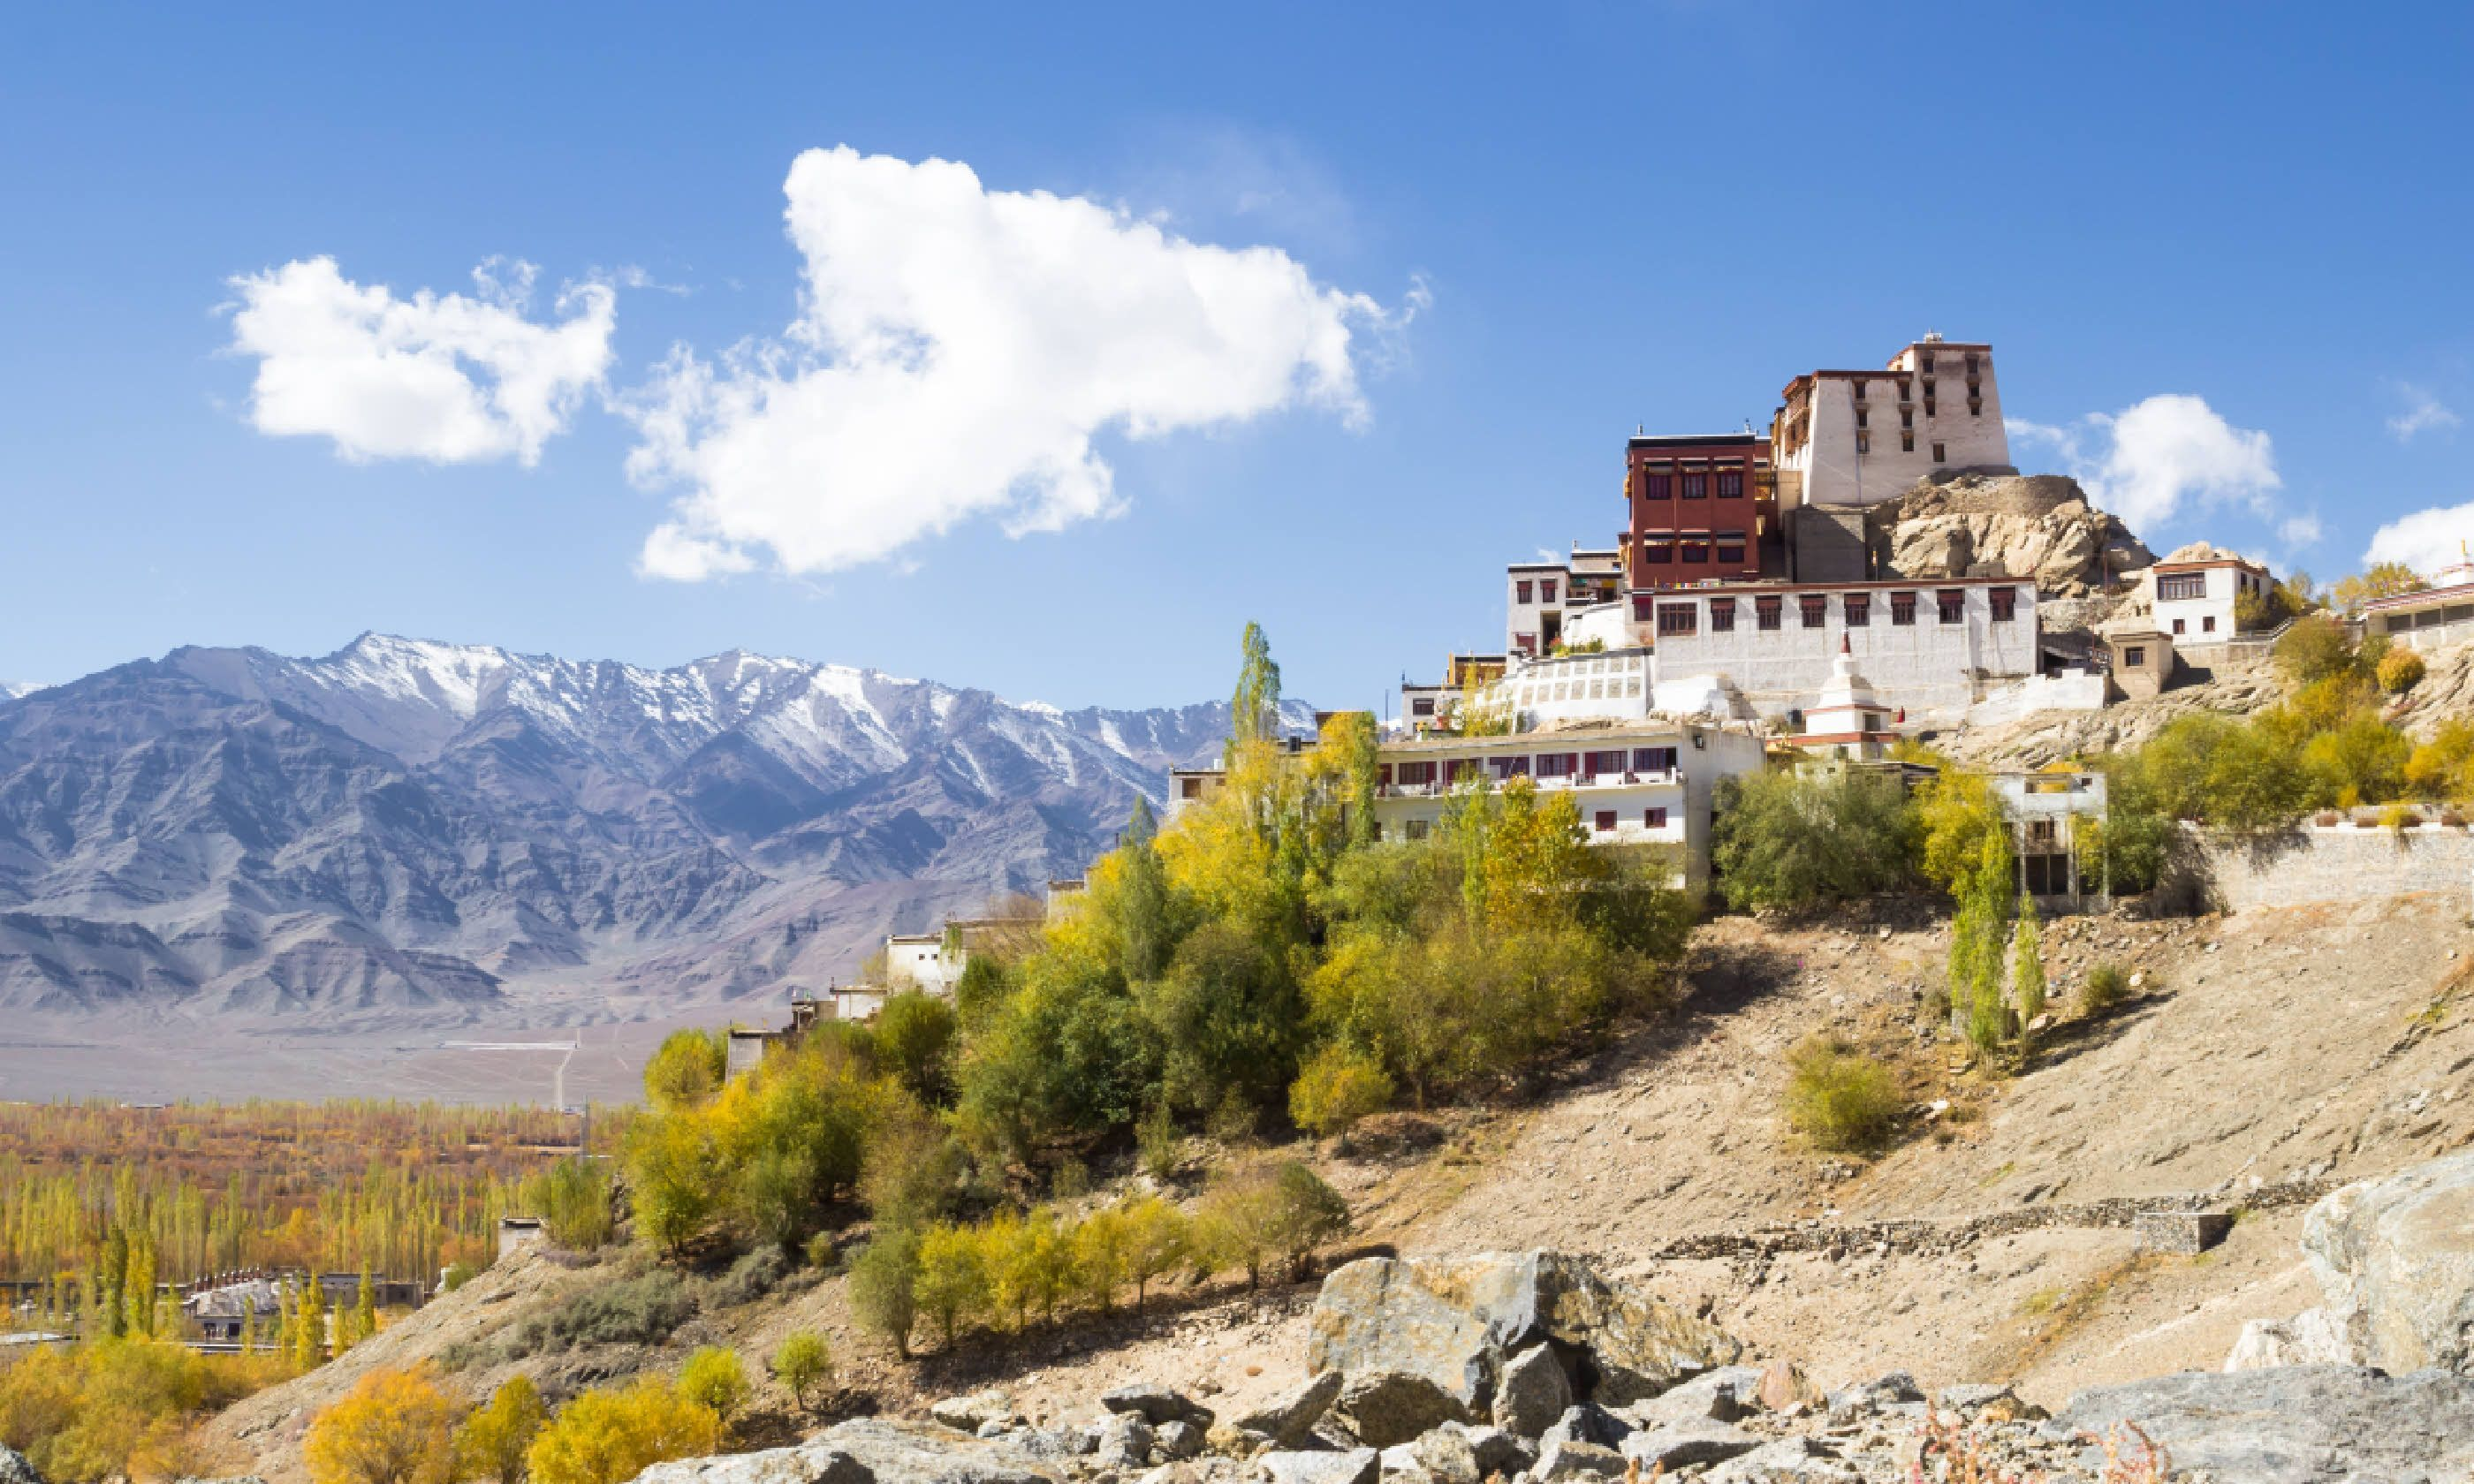 Thikse Monastery (Shutterstock)